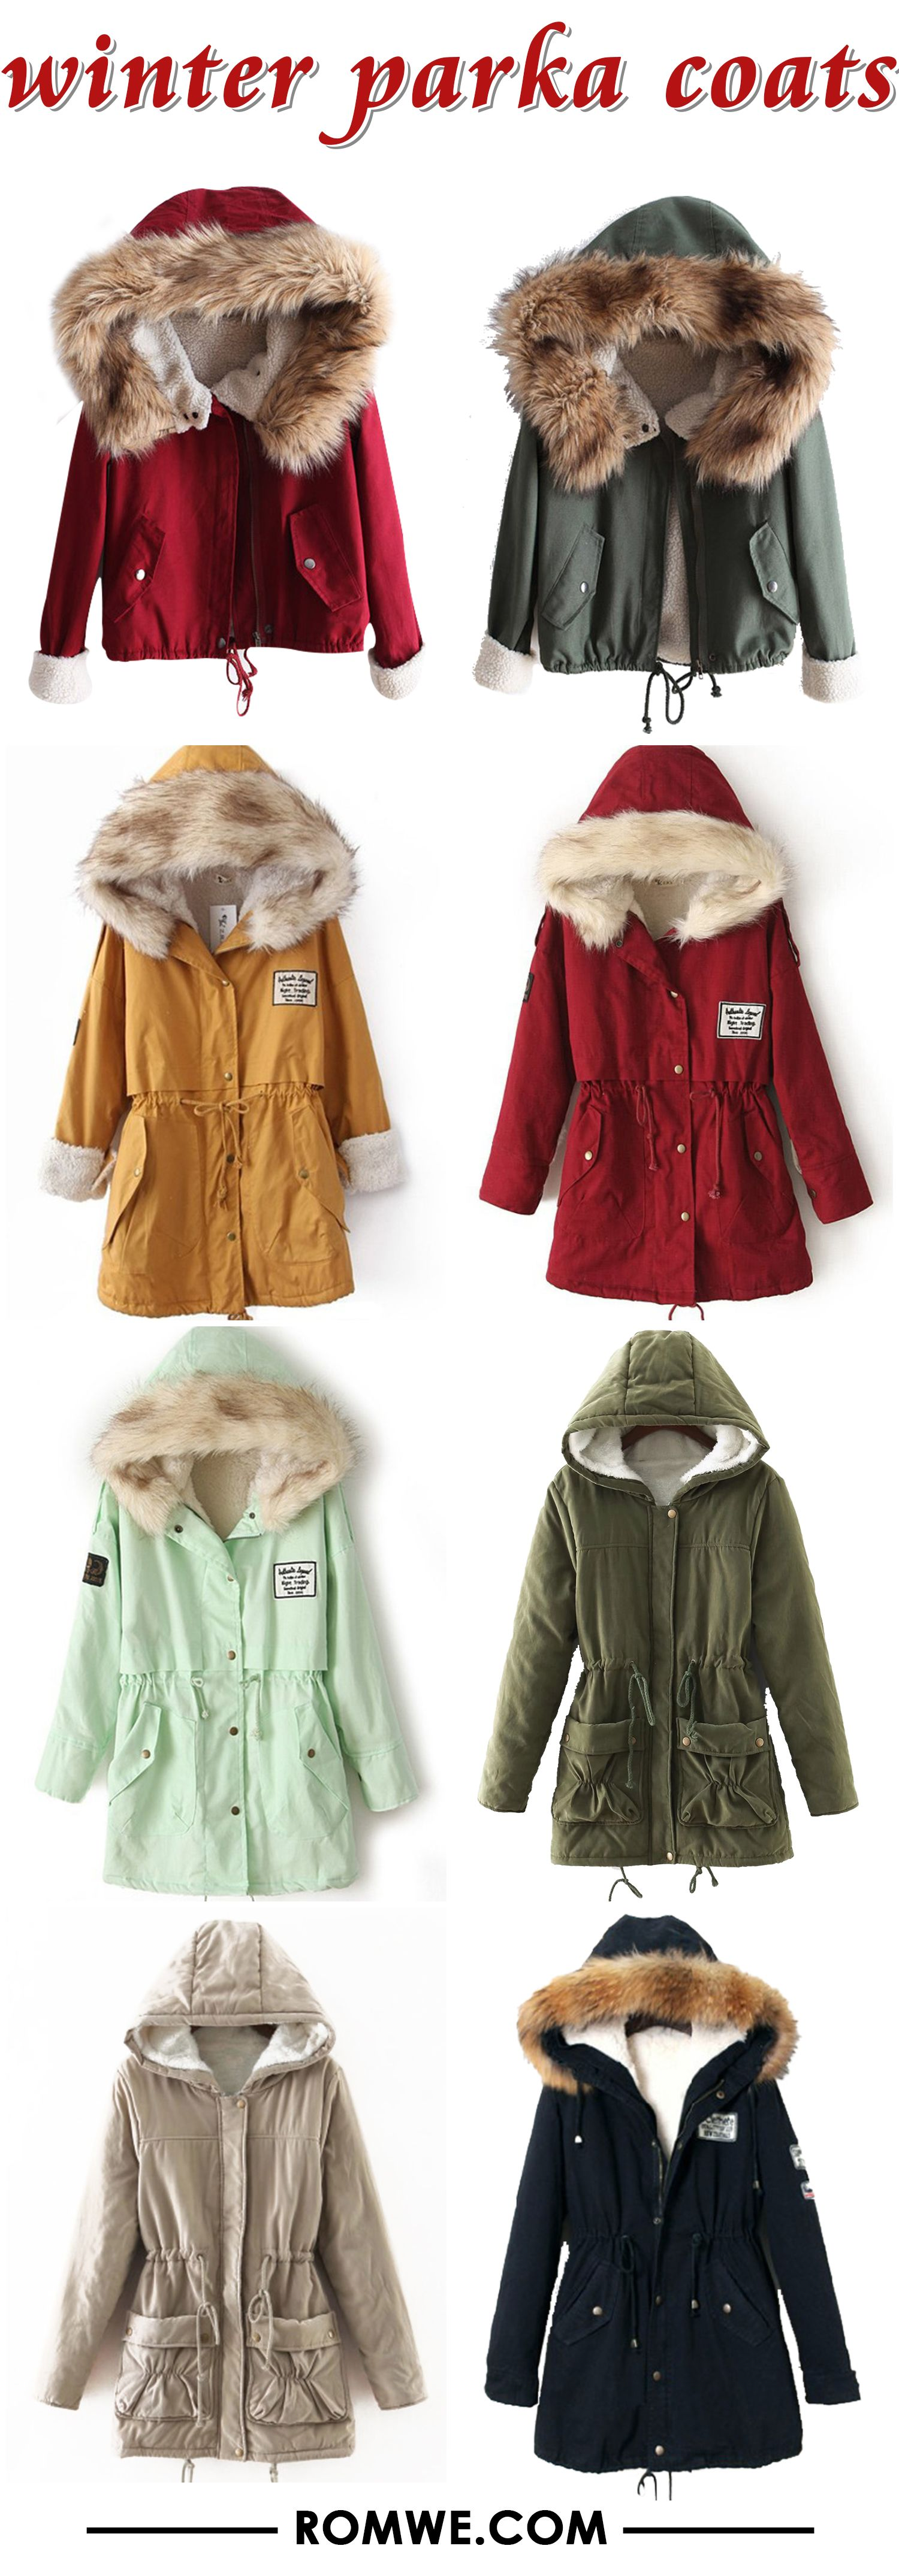 black friday sale - winter warm parka coats from romwe.com